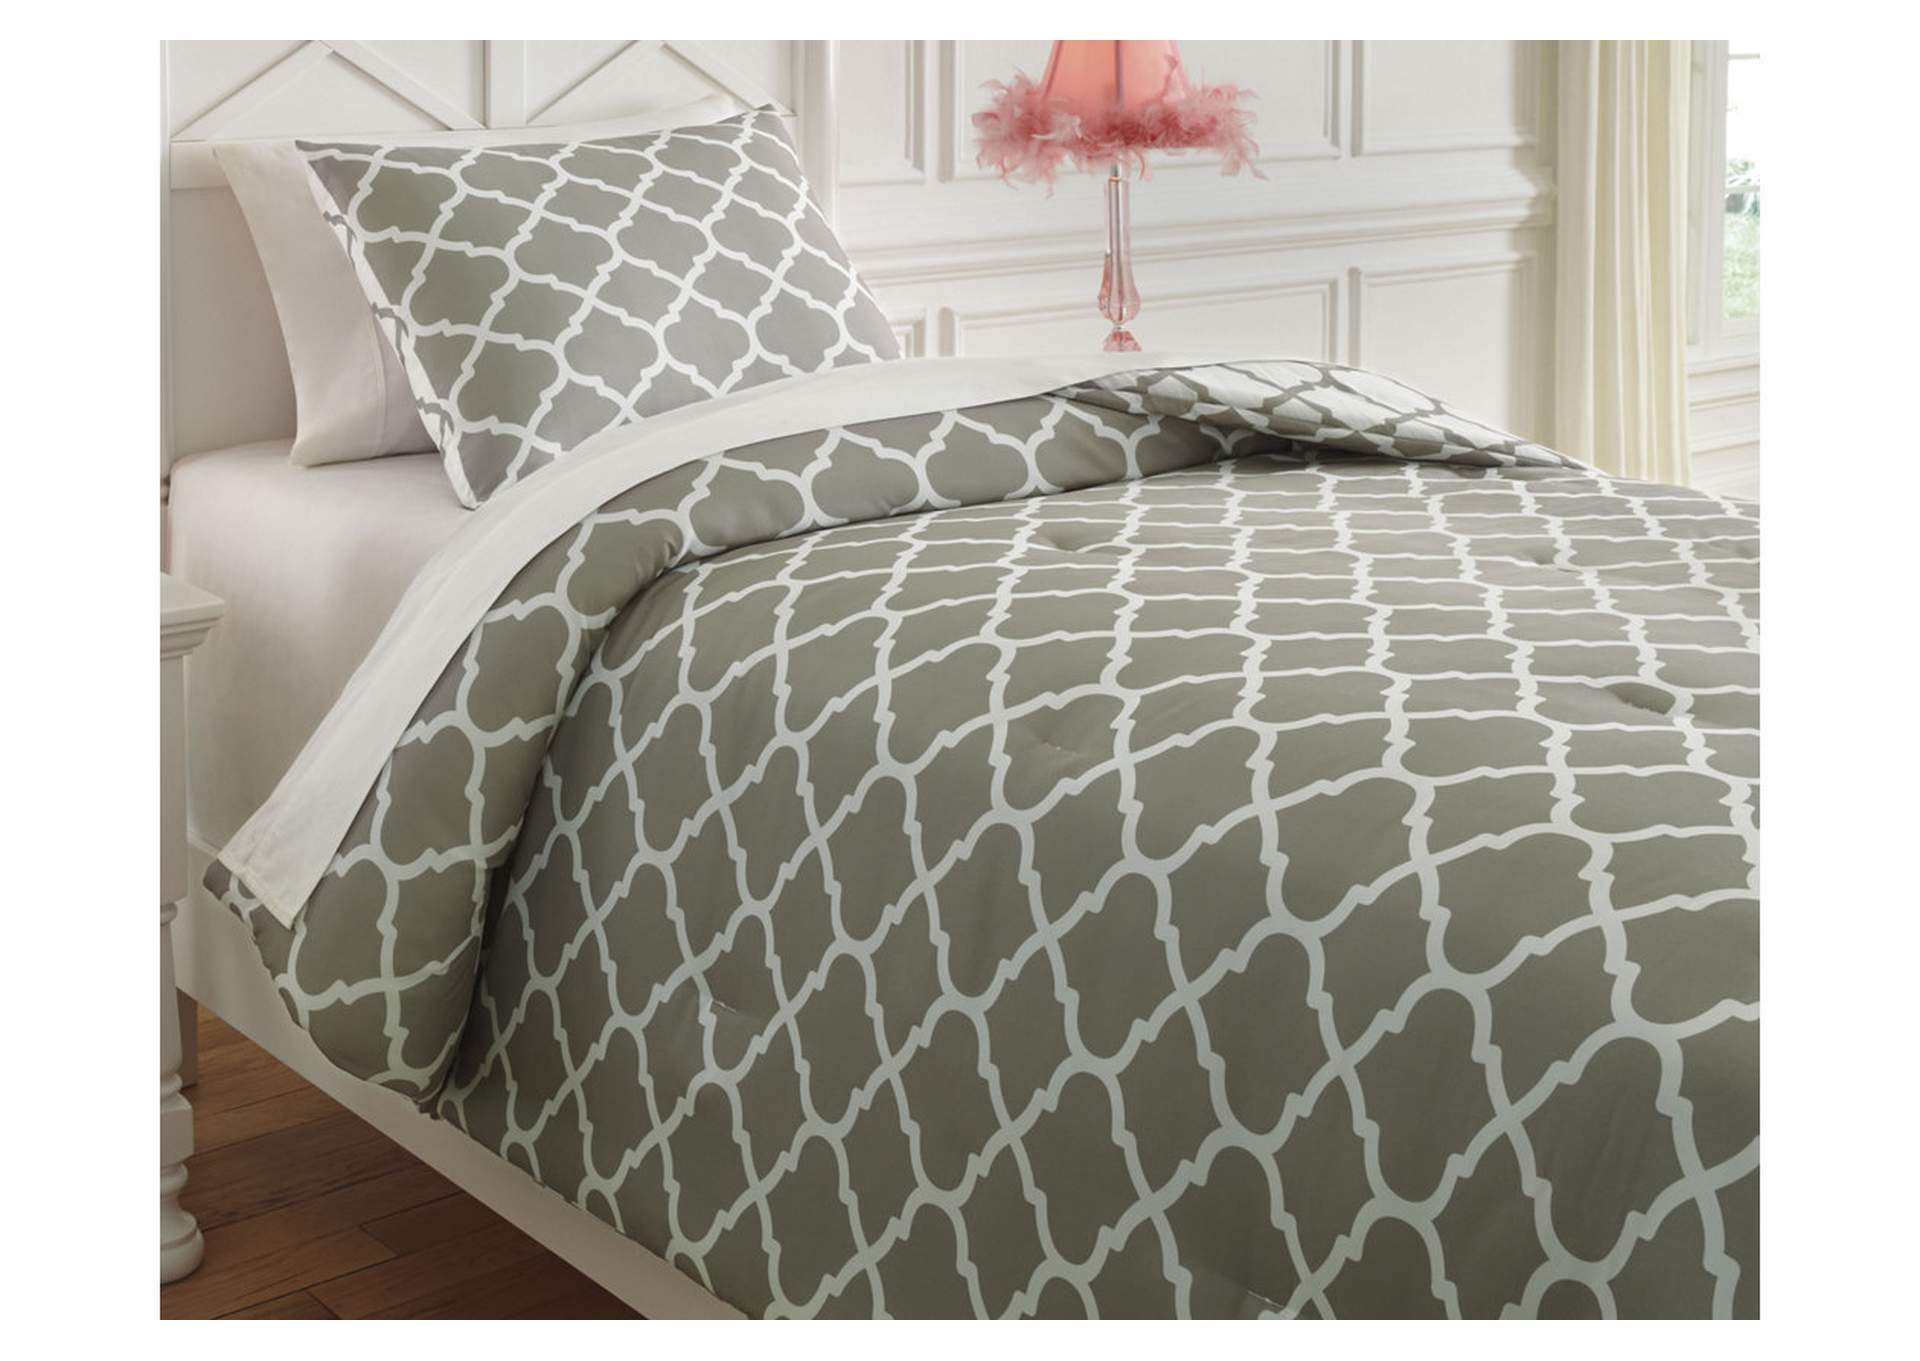 Media Gray/White Twin Comforter Set,Direct To Consumer Express